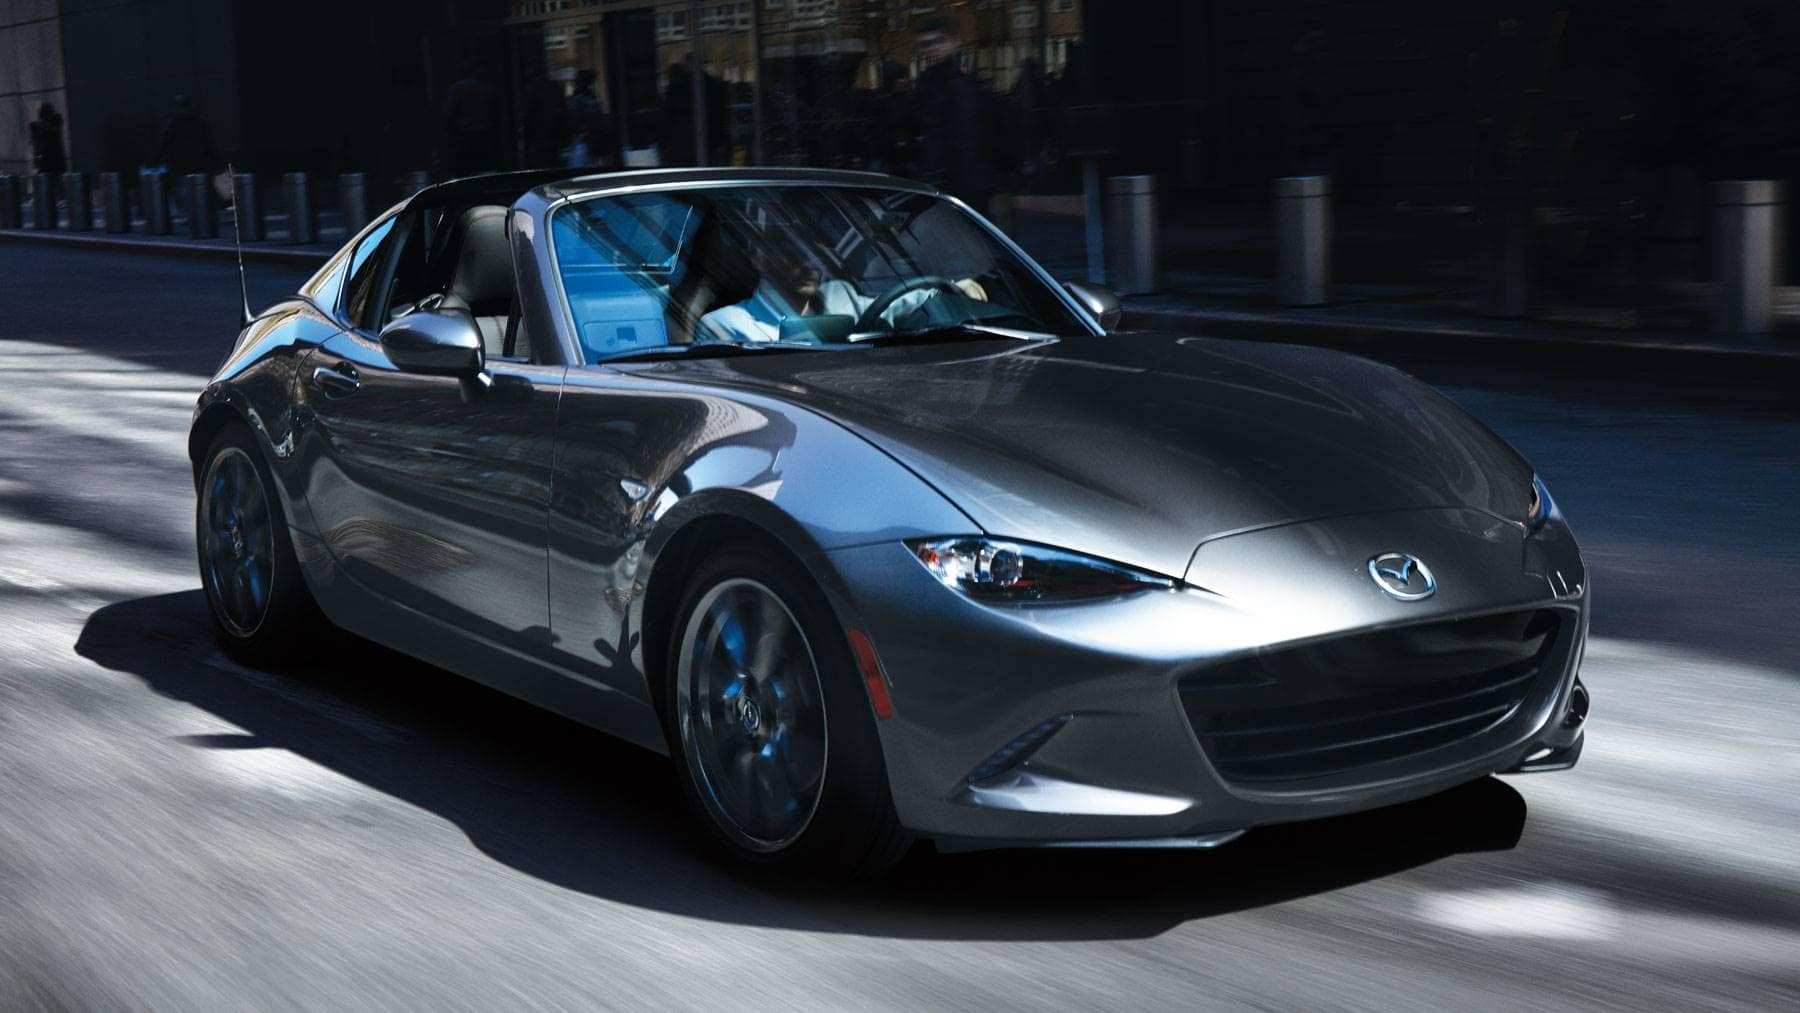 96 The 2019 Mazda MX 5 Price Design And Review